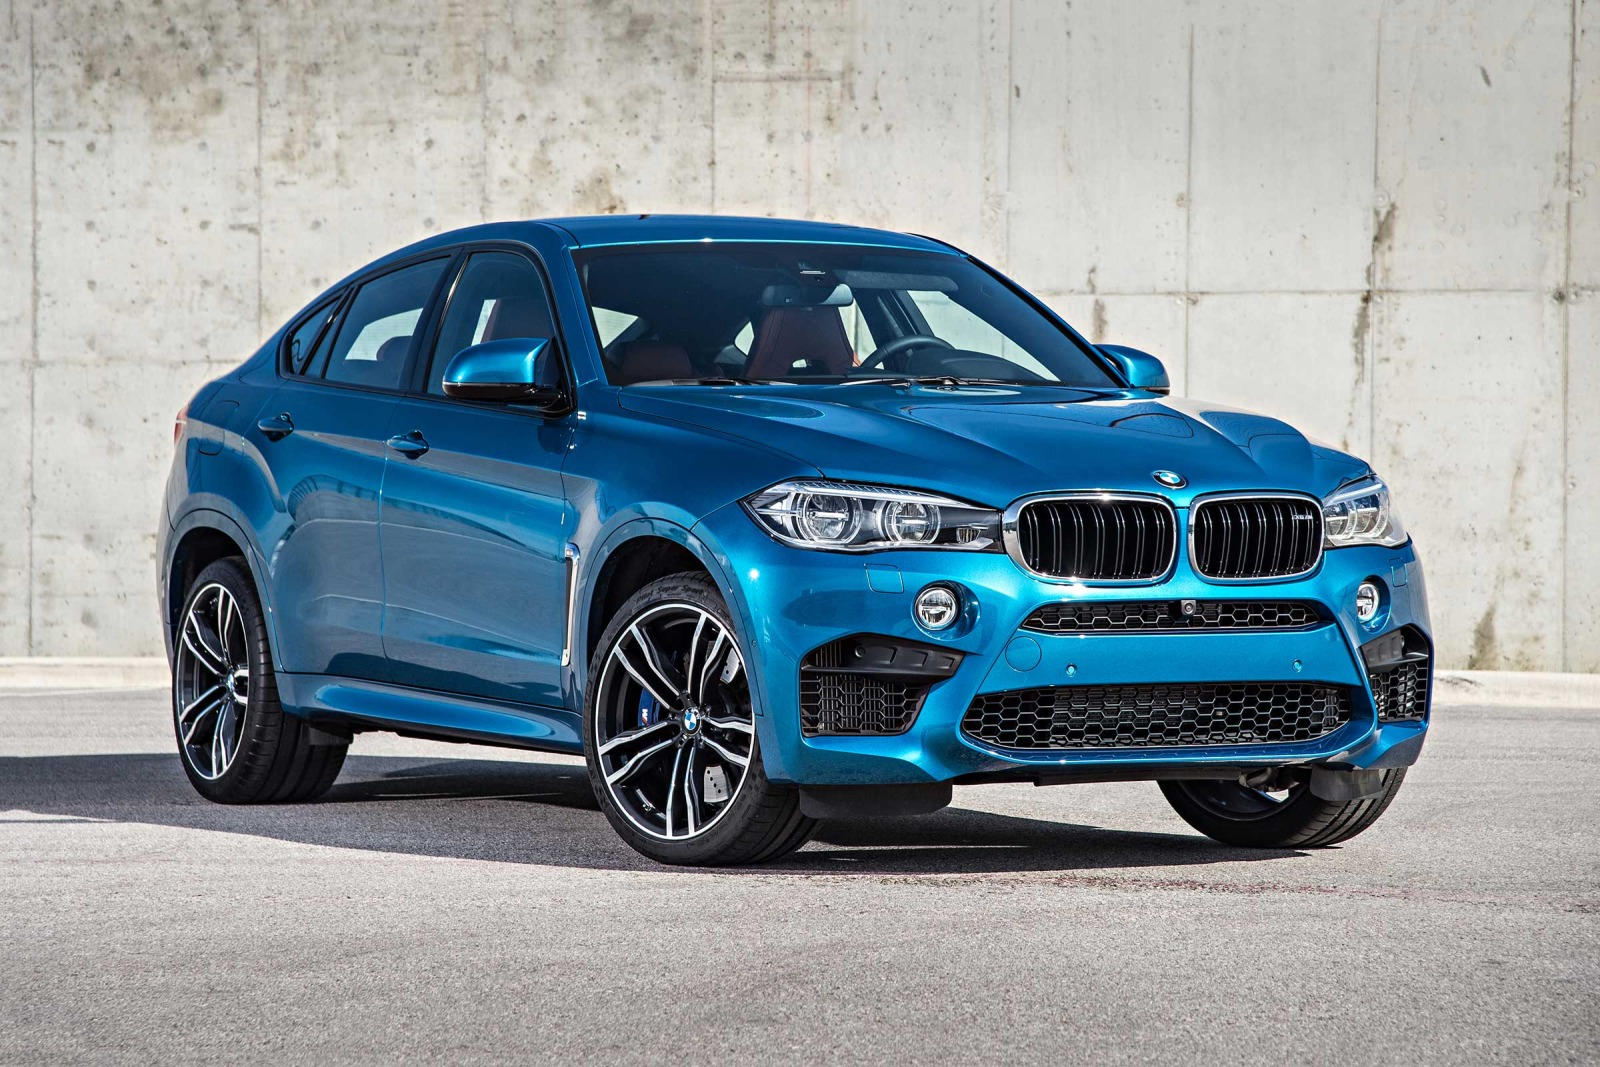 2019 Bmw X6 M Review Trims Specs Price New Interior Features Exterior Design And Specifications Carbuzz